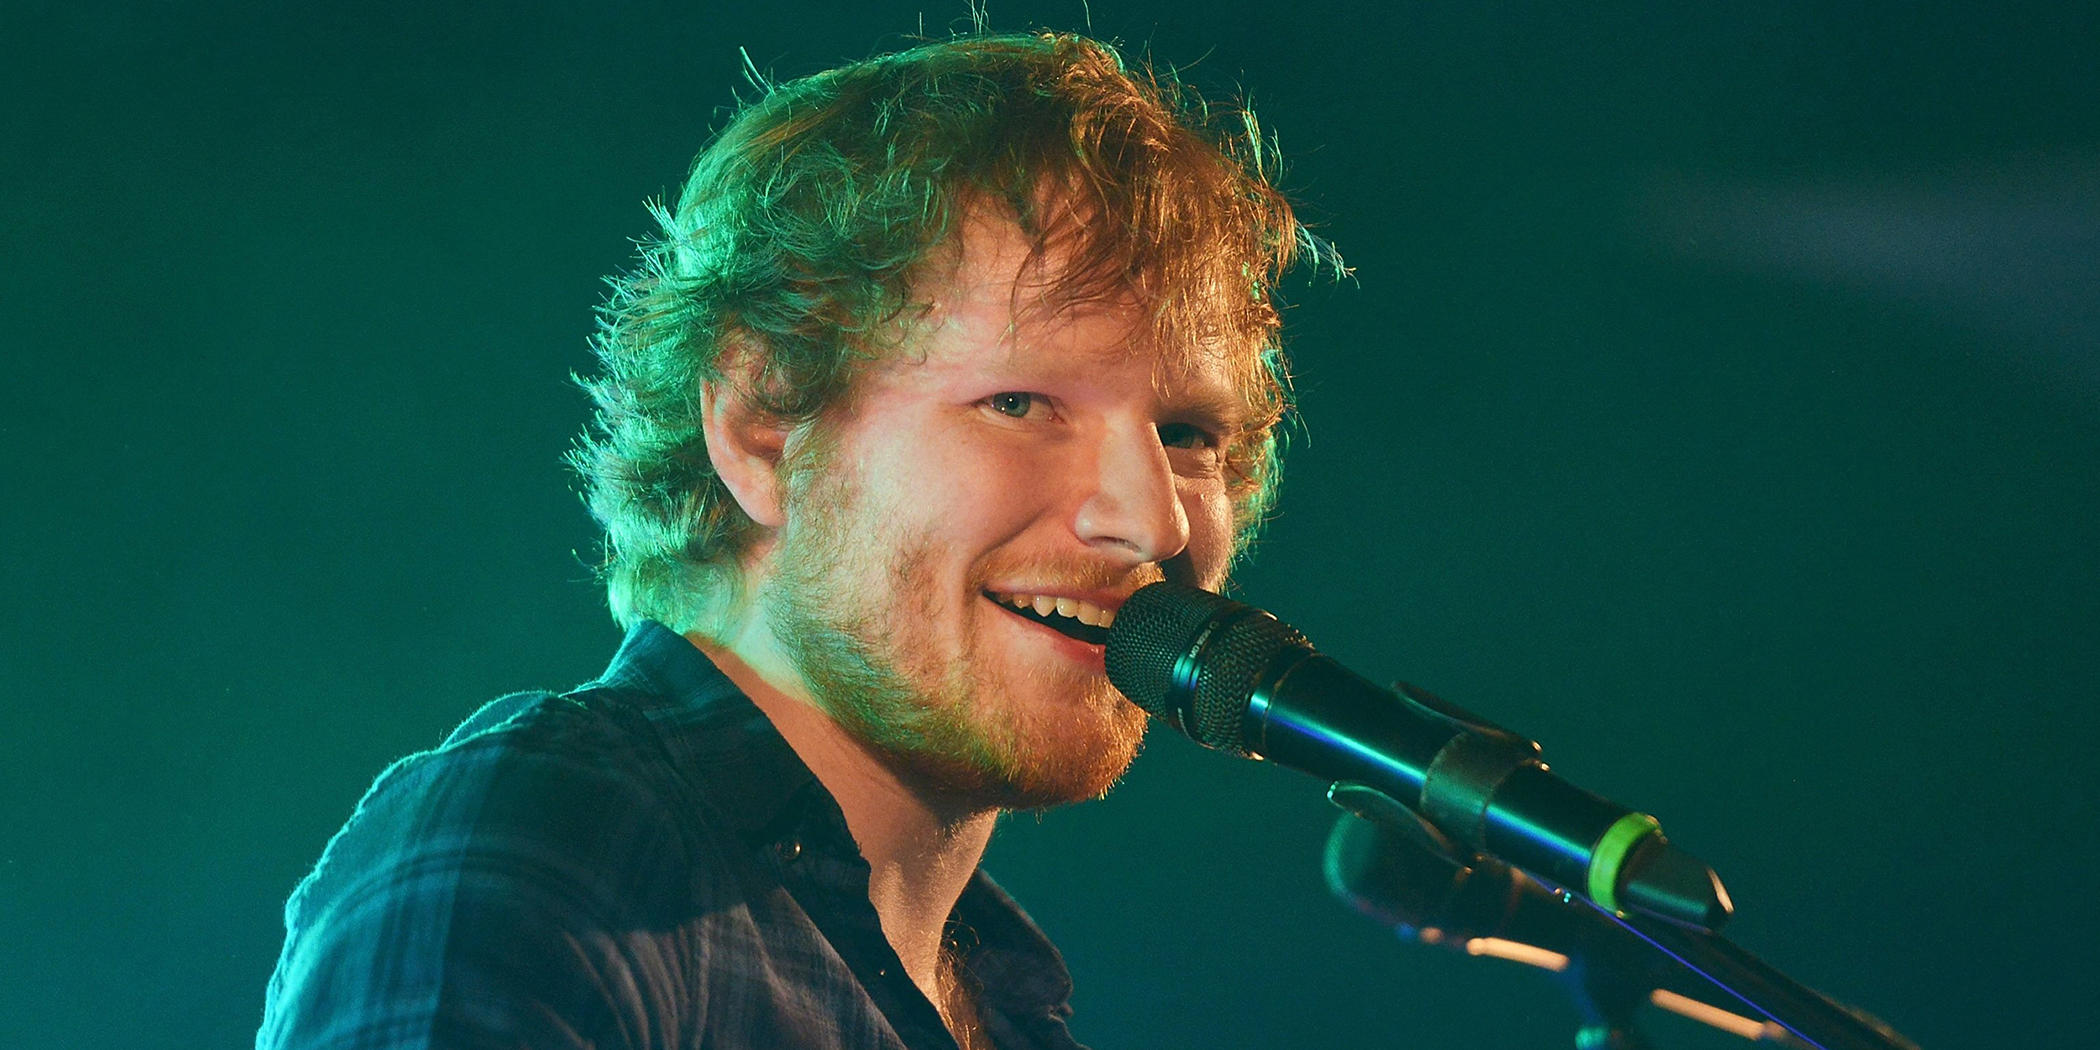 Ed Sheeran's New Album Was Worth the Wait